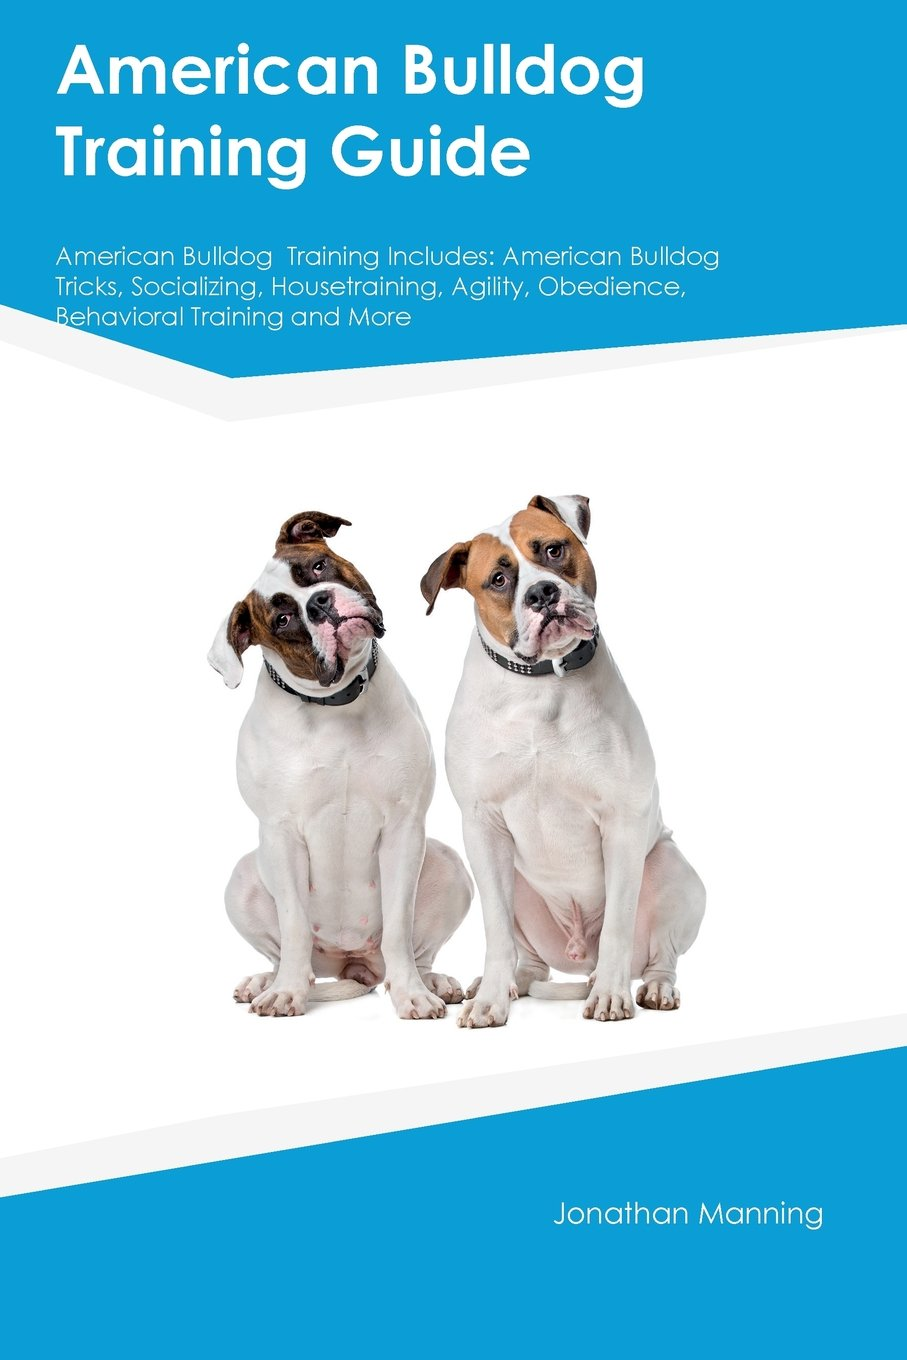 American-Bulldog-Training-Guide-American-Bulldog-Training-Includes-American-Bulldog-Tricks-Socializing-Housetraining-Agility-Obedience-Behavioral-Training-and-More